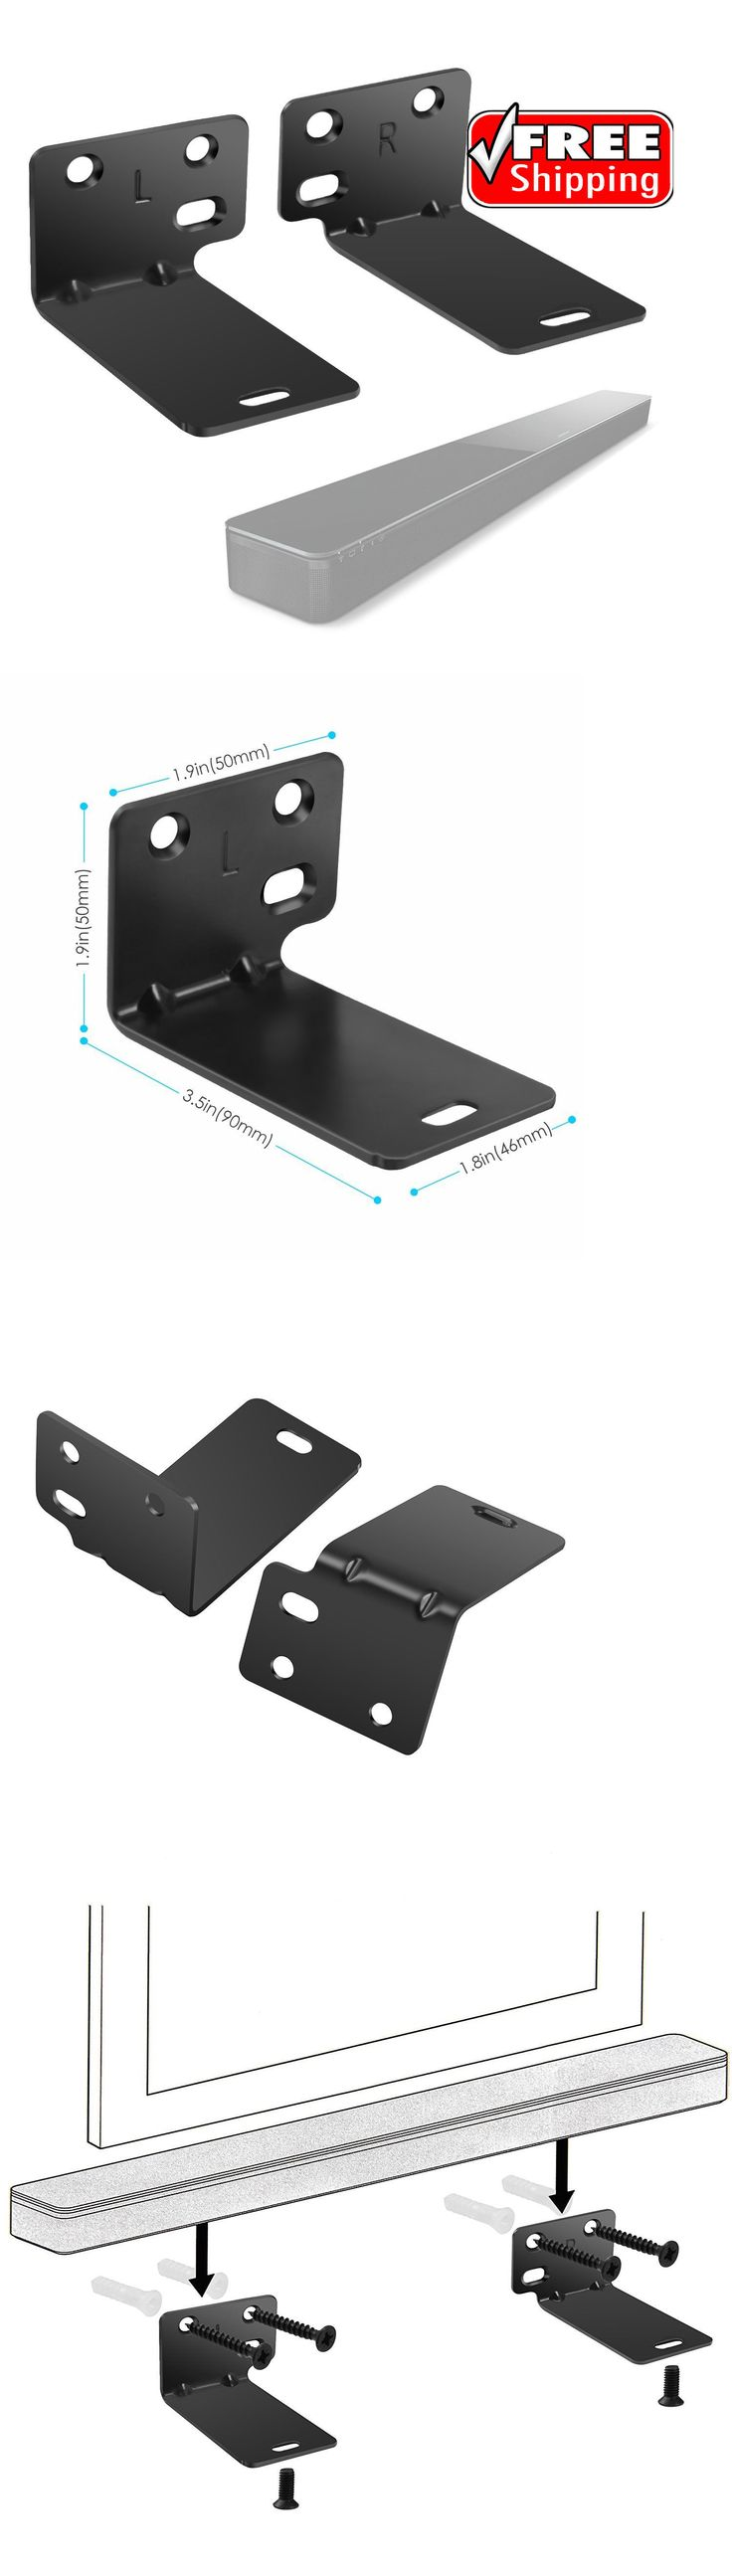 Speaker Mounts and Stands: Wall Bracket For Bose Wb-300 Soundtouch 300 Soundbar Speaker Black - New -> BUY IT NOW ONLY: $33.88 on eBay!